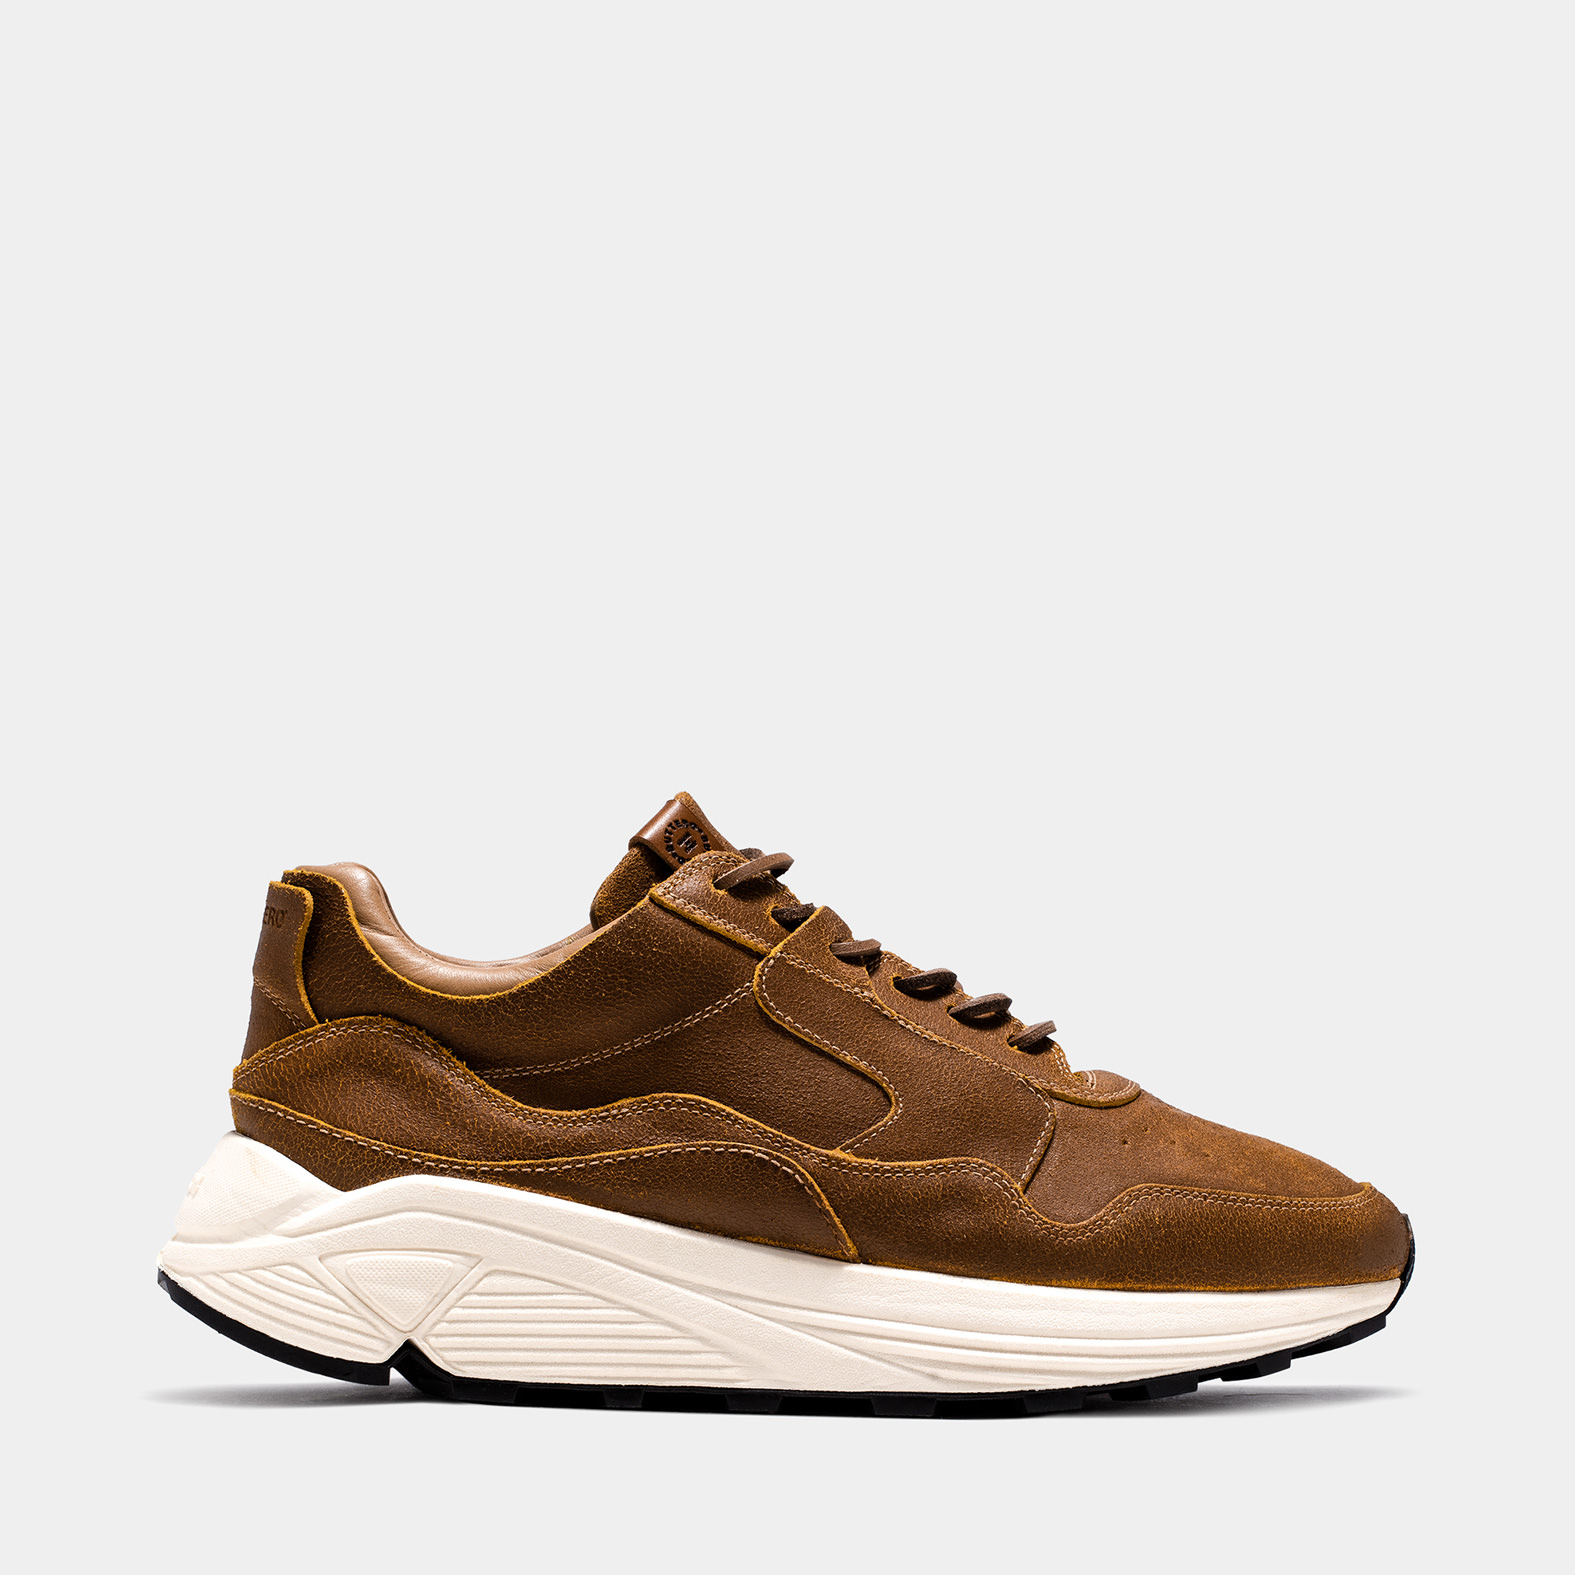 BUTTERO: VINCI SNEAKER IN NATURAL BROWN BIANCHETTO LEATHER